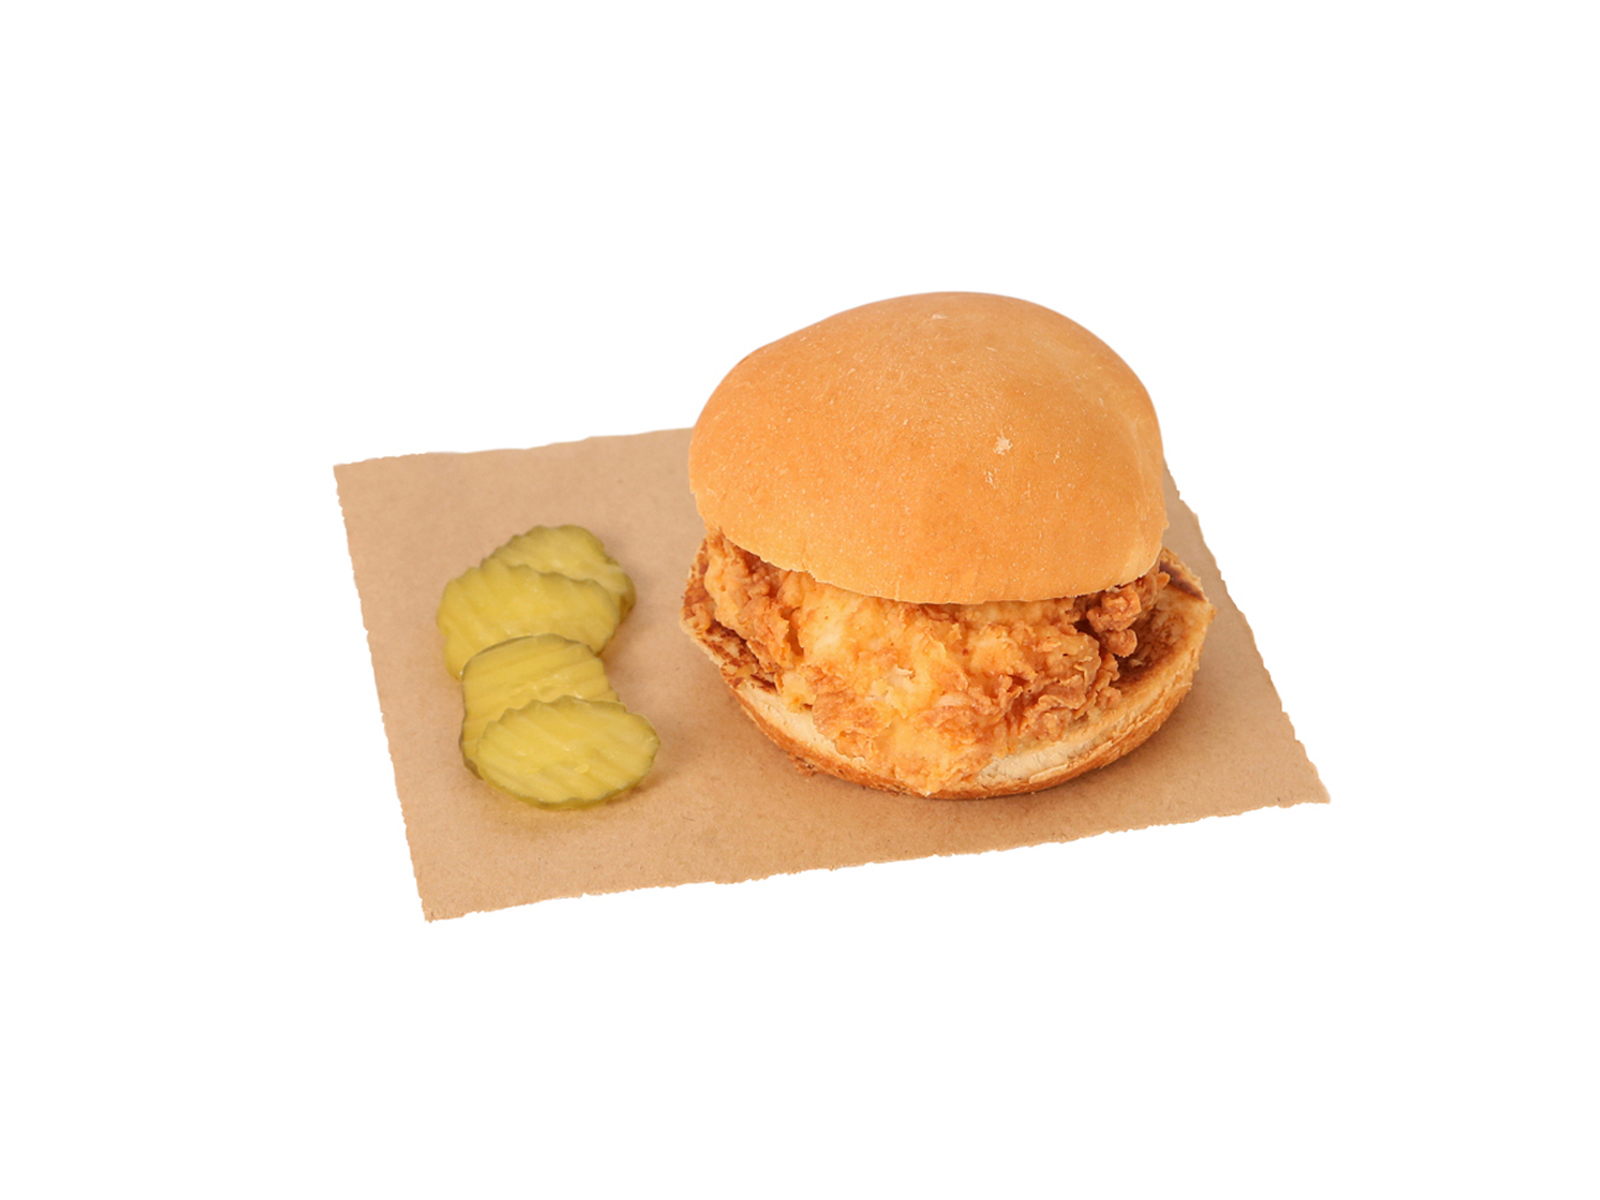 crispy chicken sandwich served with pickles